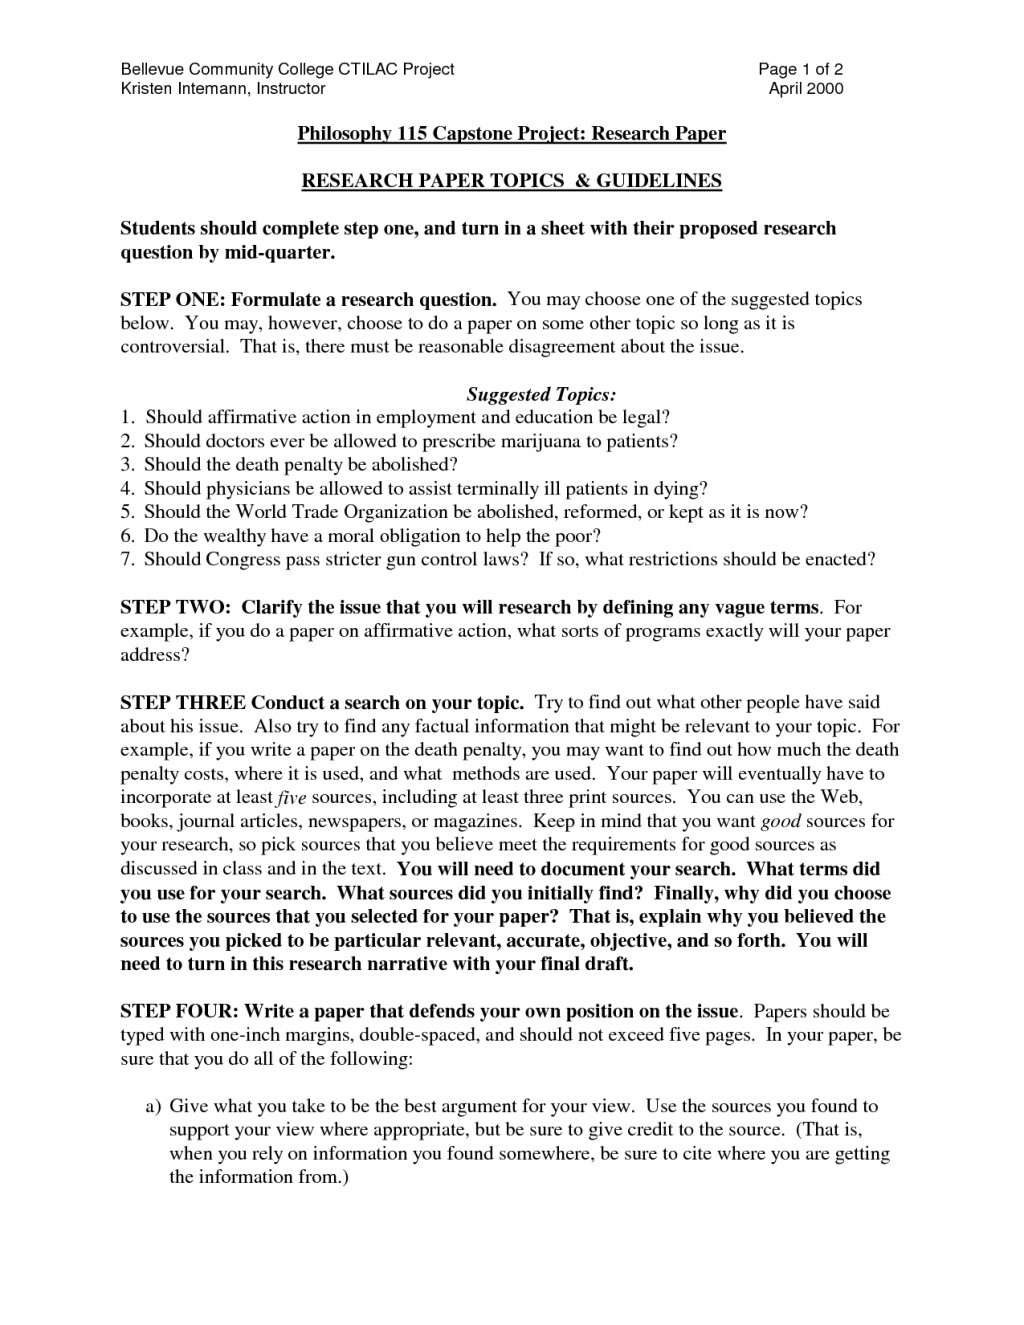 002 Research Paper Examples For College Impressive Sample In The Philippines Topics Students Large